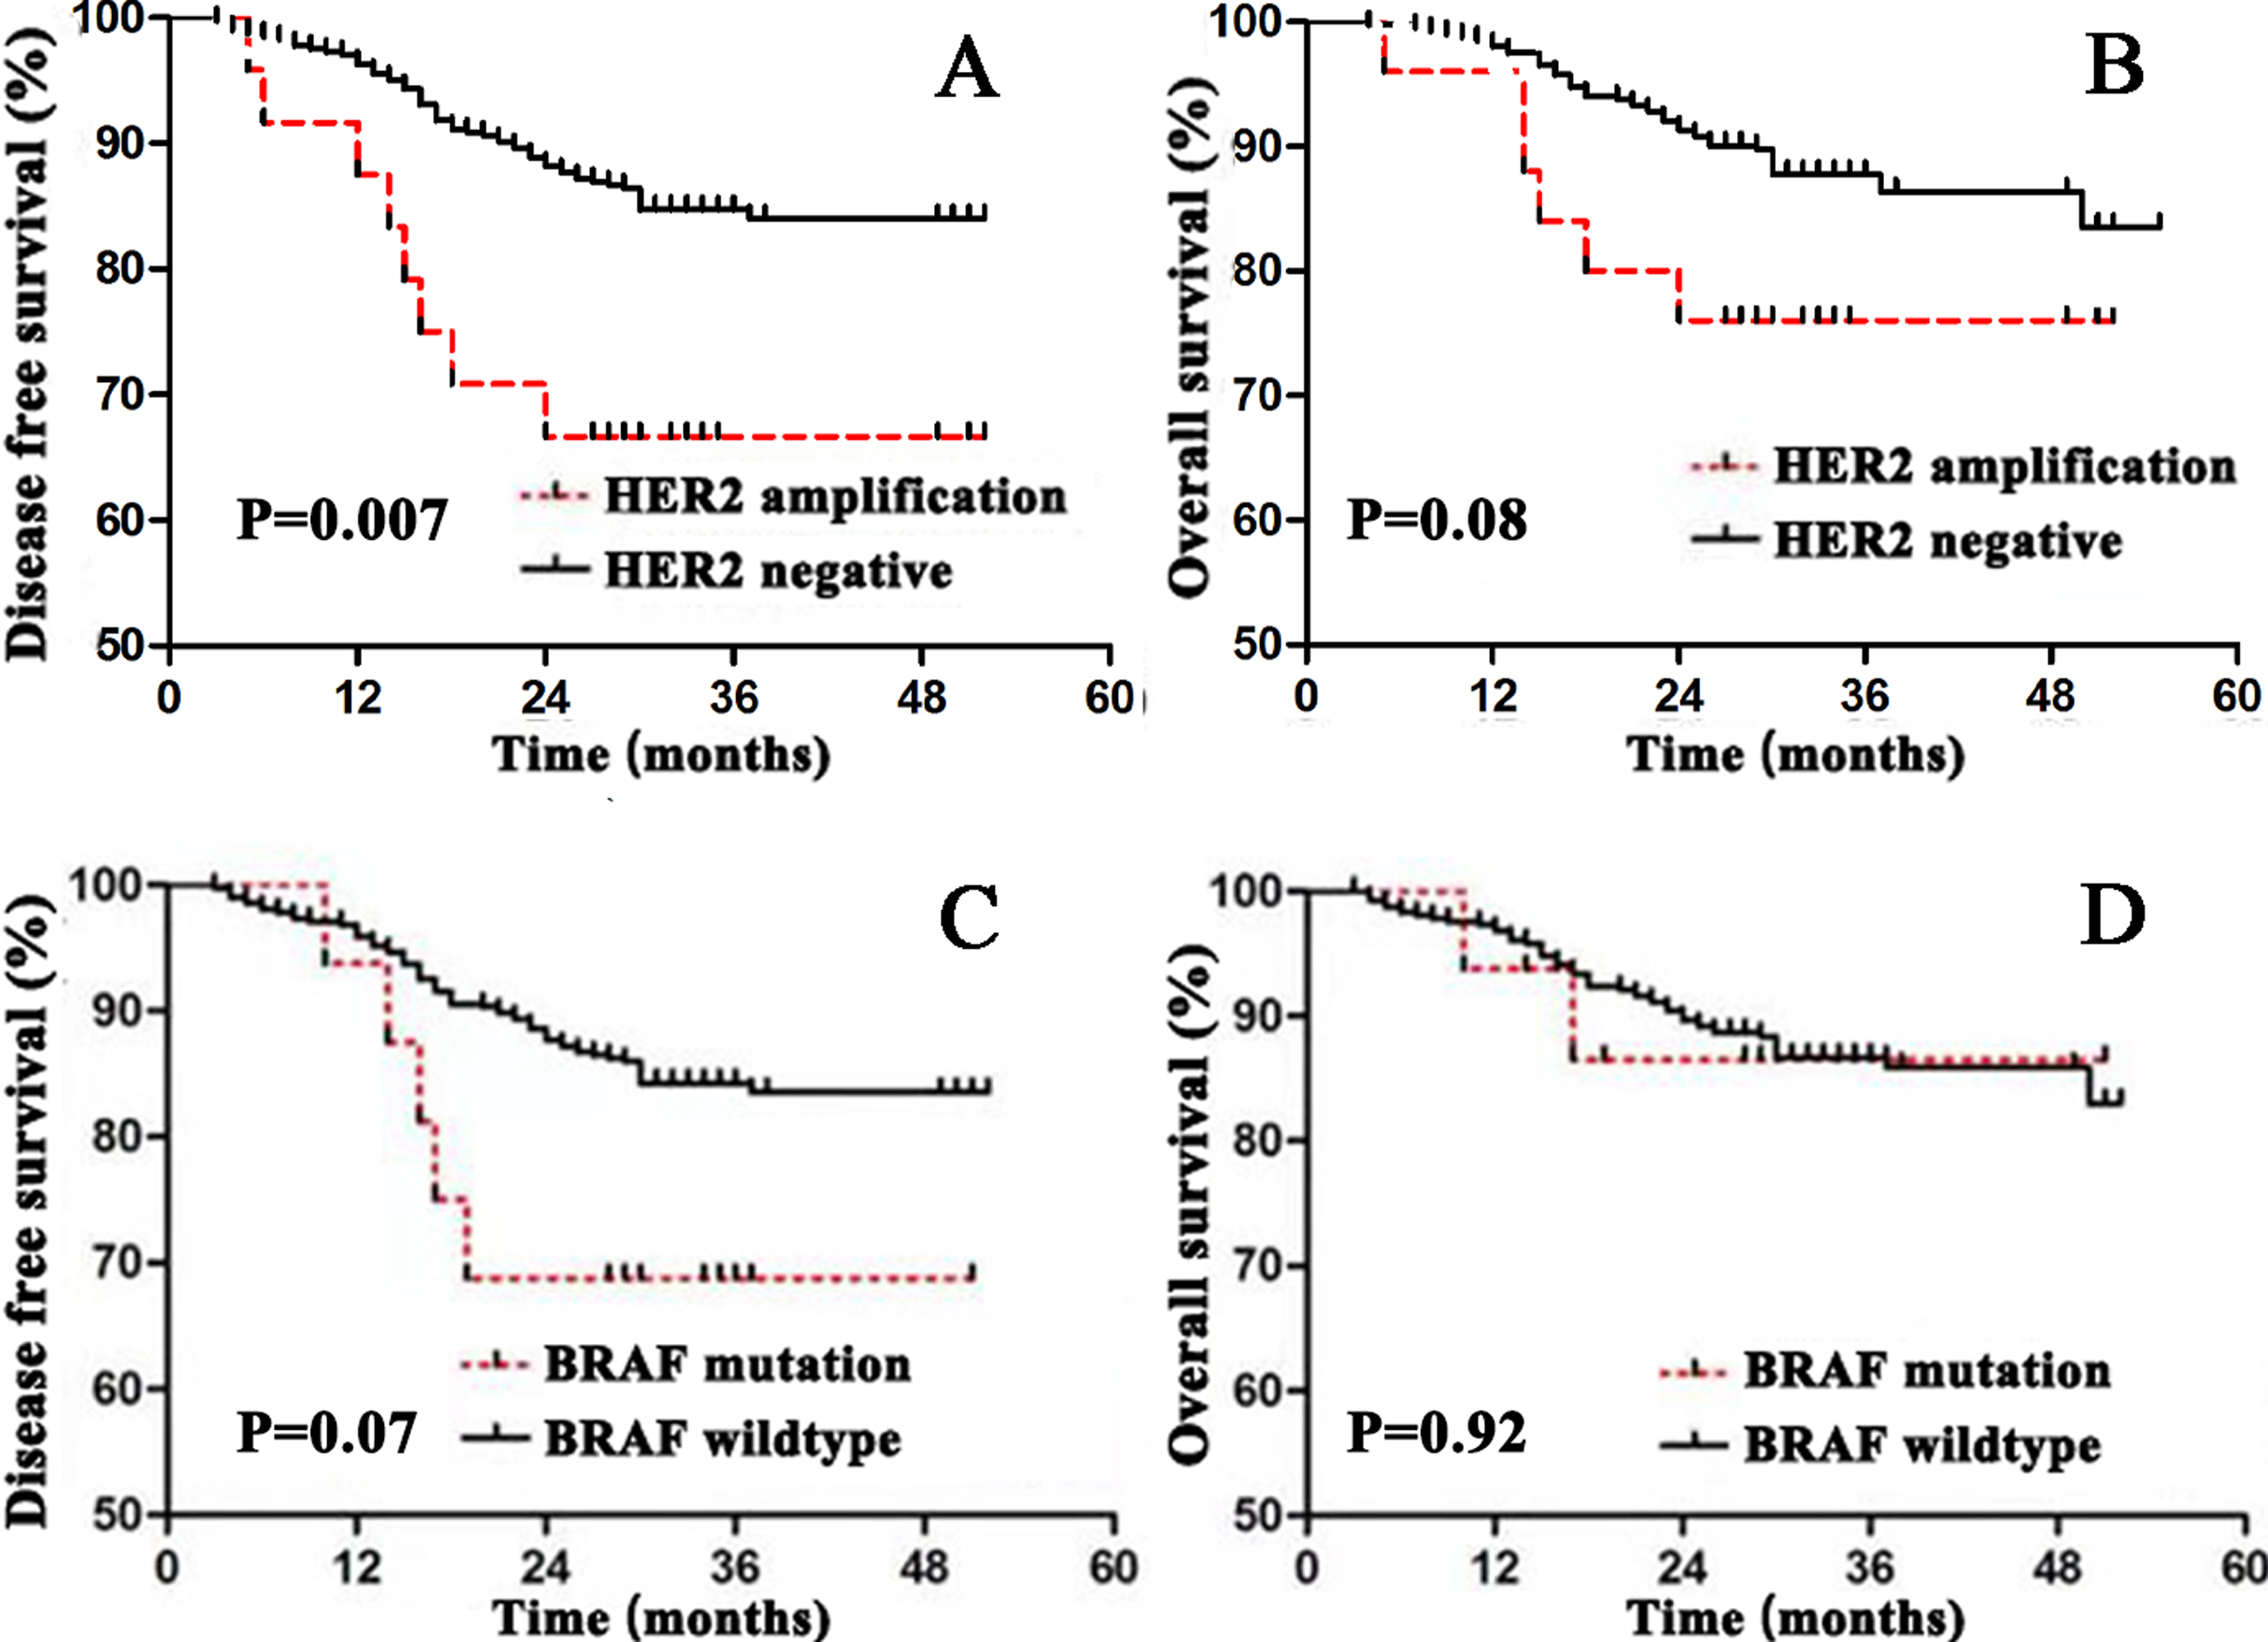 Her2 And Braf Mutation In Colorectal Cancer Patients A Retrospective Study In Eastern China Peerj